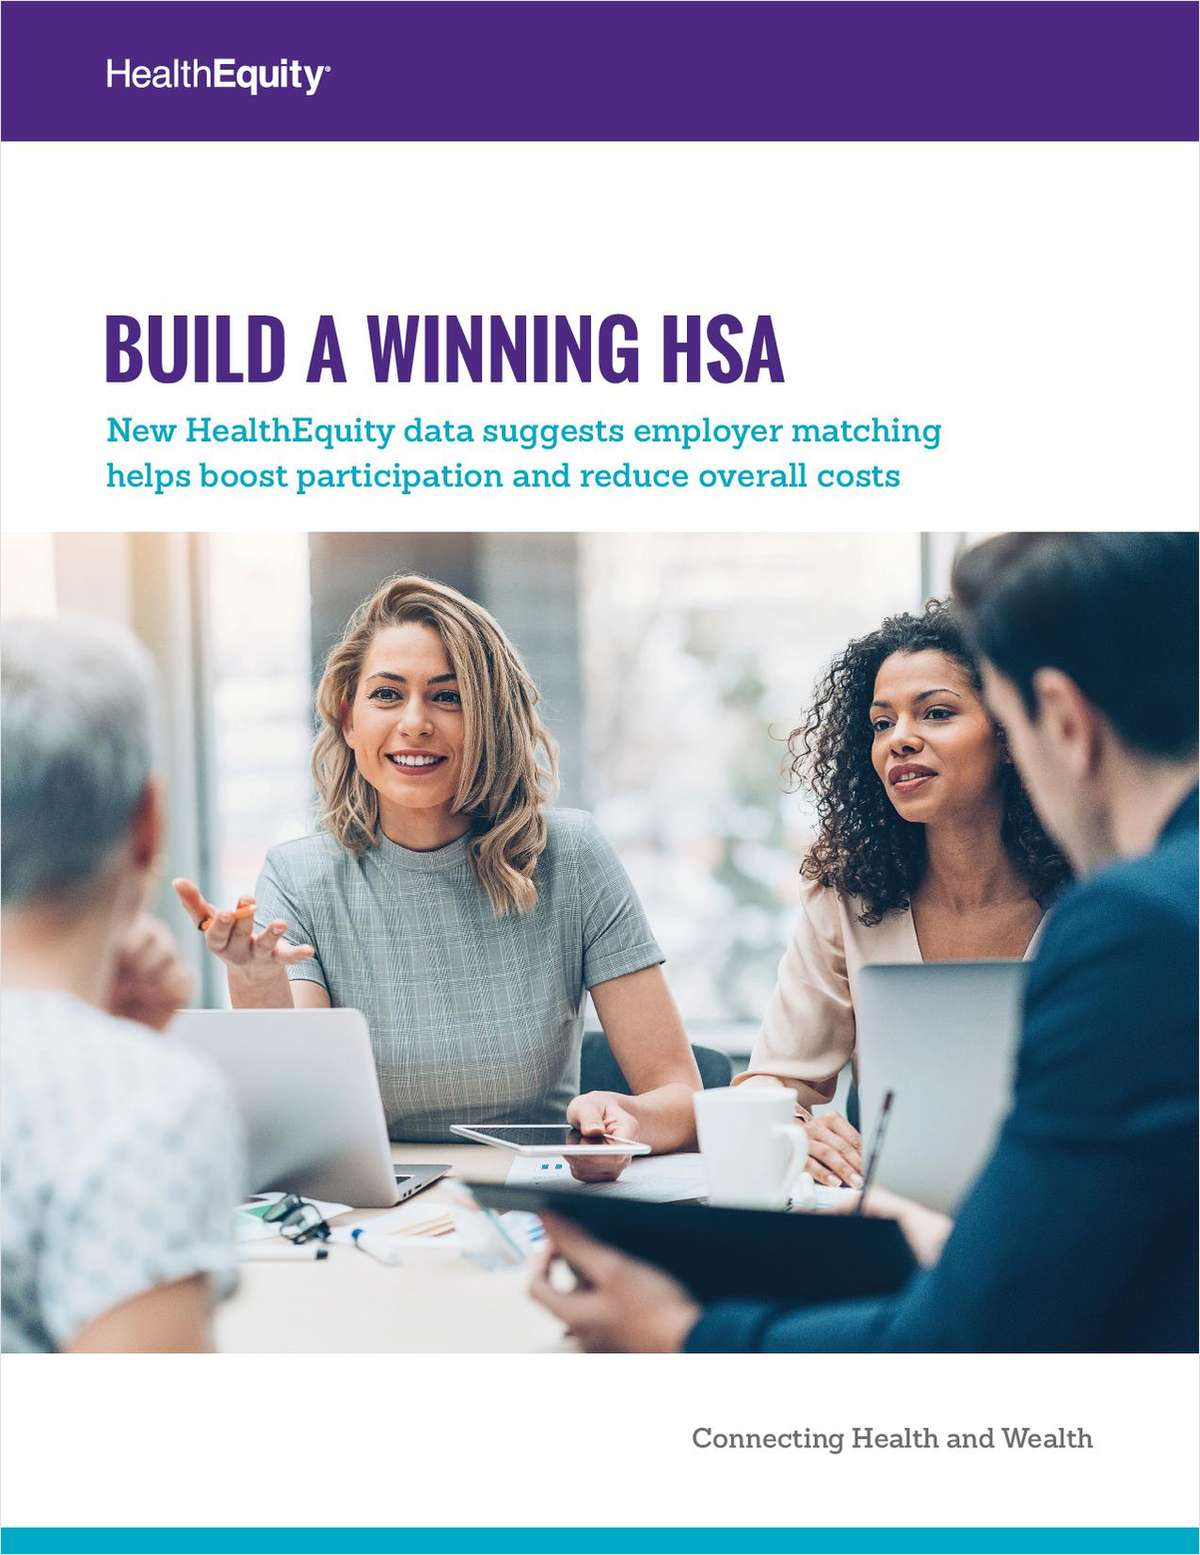 Build a Winning HSA: The Effect of Employer Contribution Matching